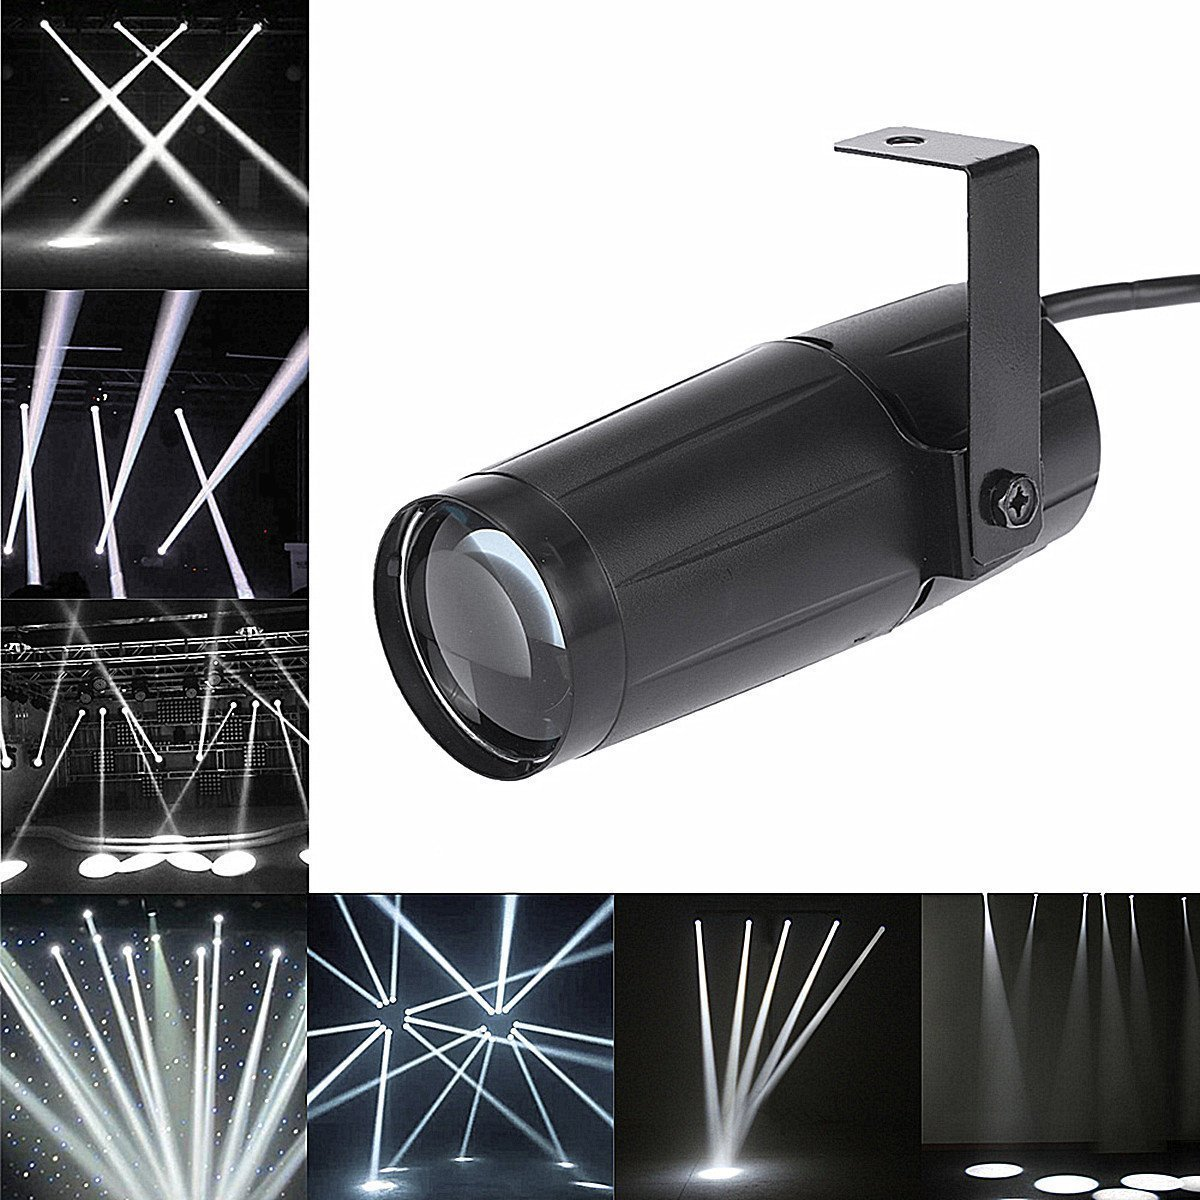 LED Beam Pinspot Light KINGSO 3W Mini Stage Lights Spotlight Track Lighting for Children's Theater Family Party Club Cinema Karaoke Wedding or Outdoor Show - Pure White 4334418226